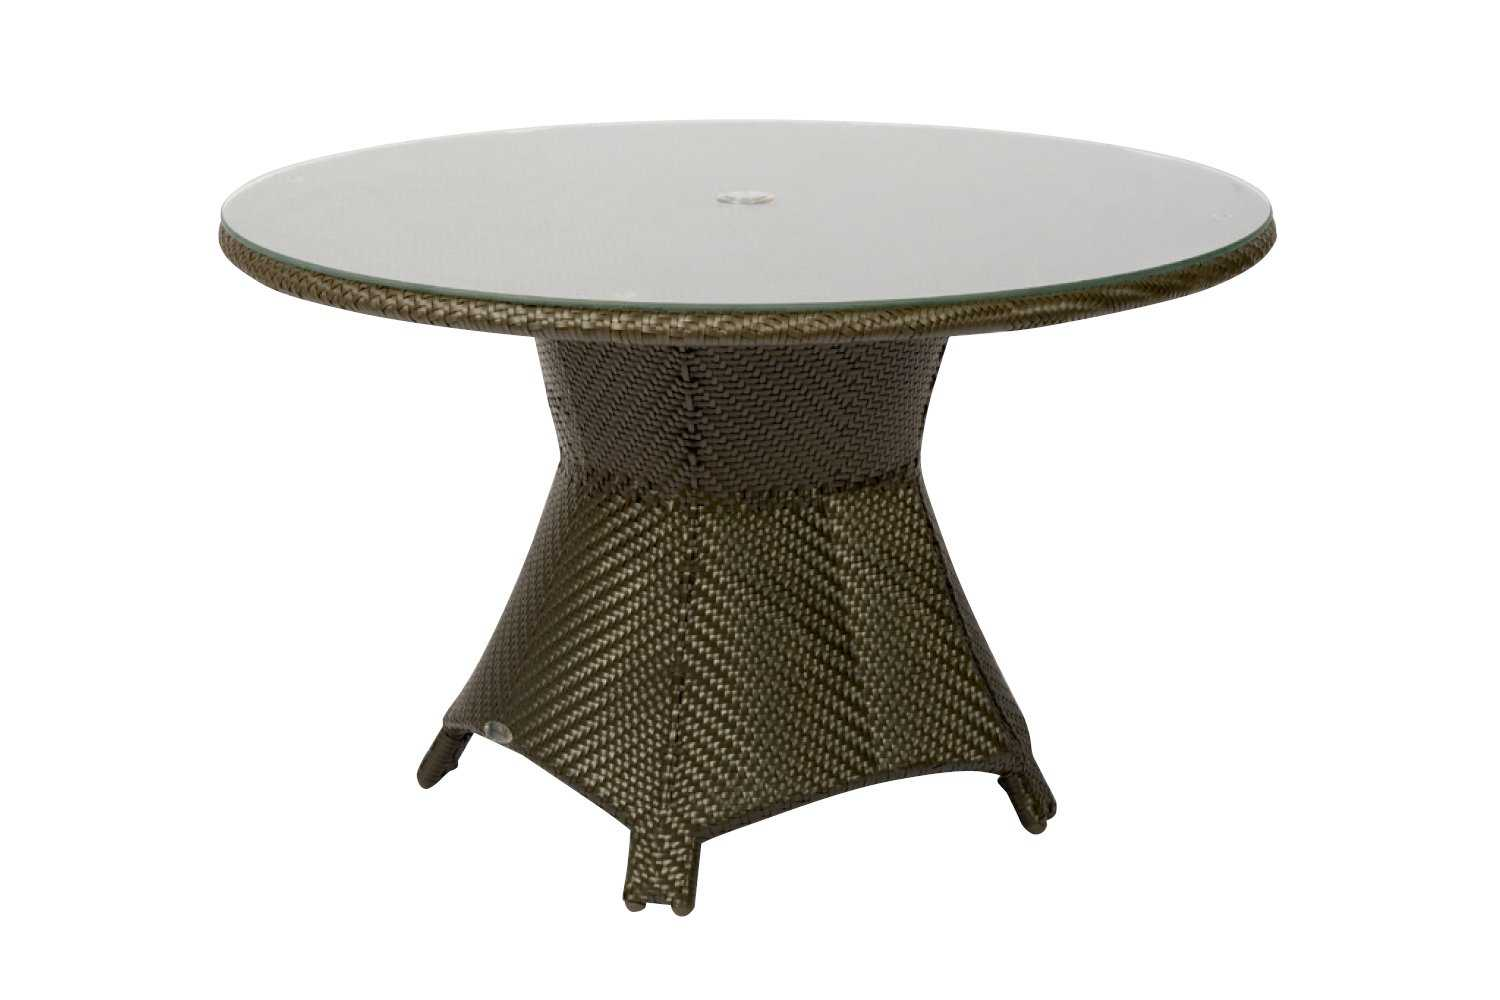 chair covers for sale in trinidad mushroom walmart woodard wicker 48 round glass top table with